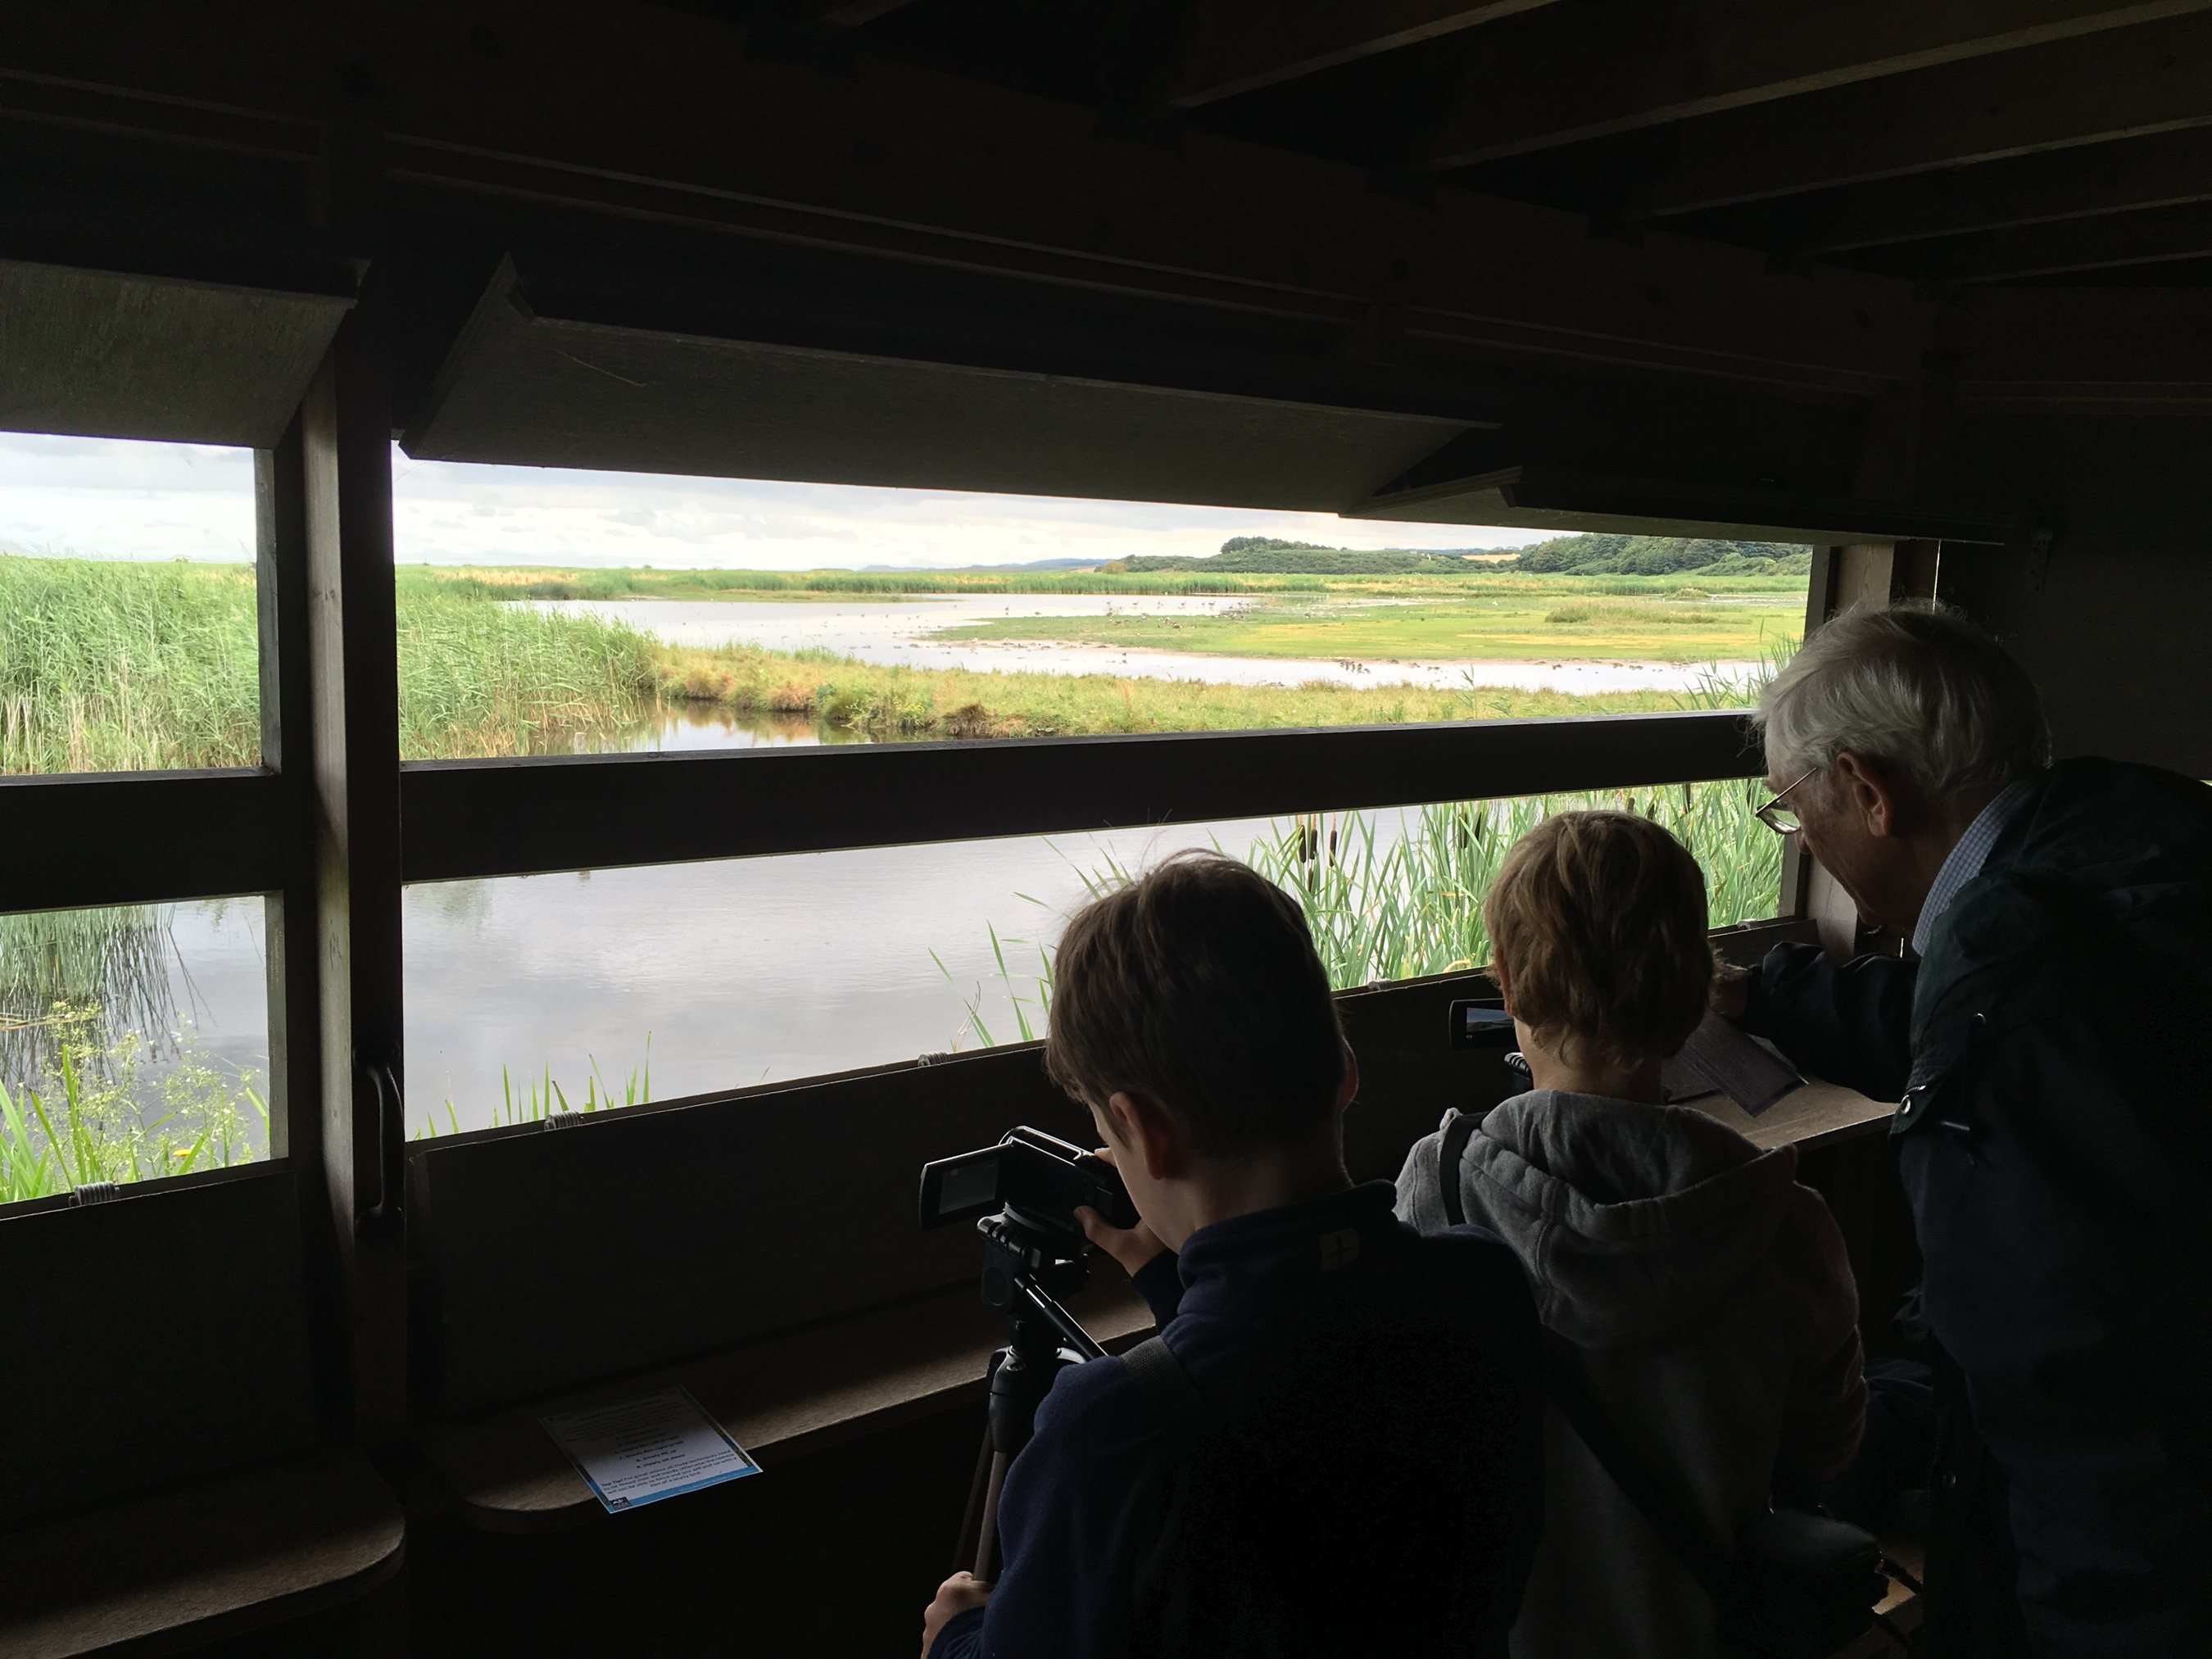 2017-10-25 Capturing Cley